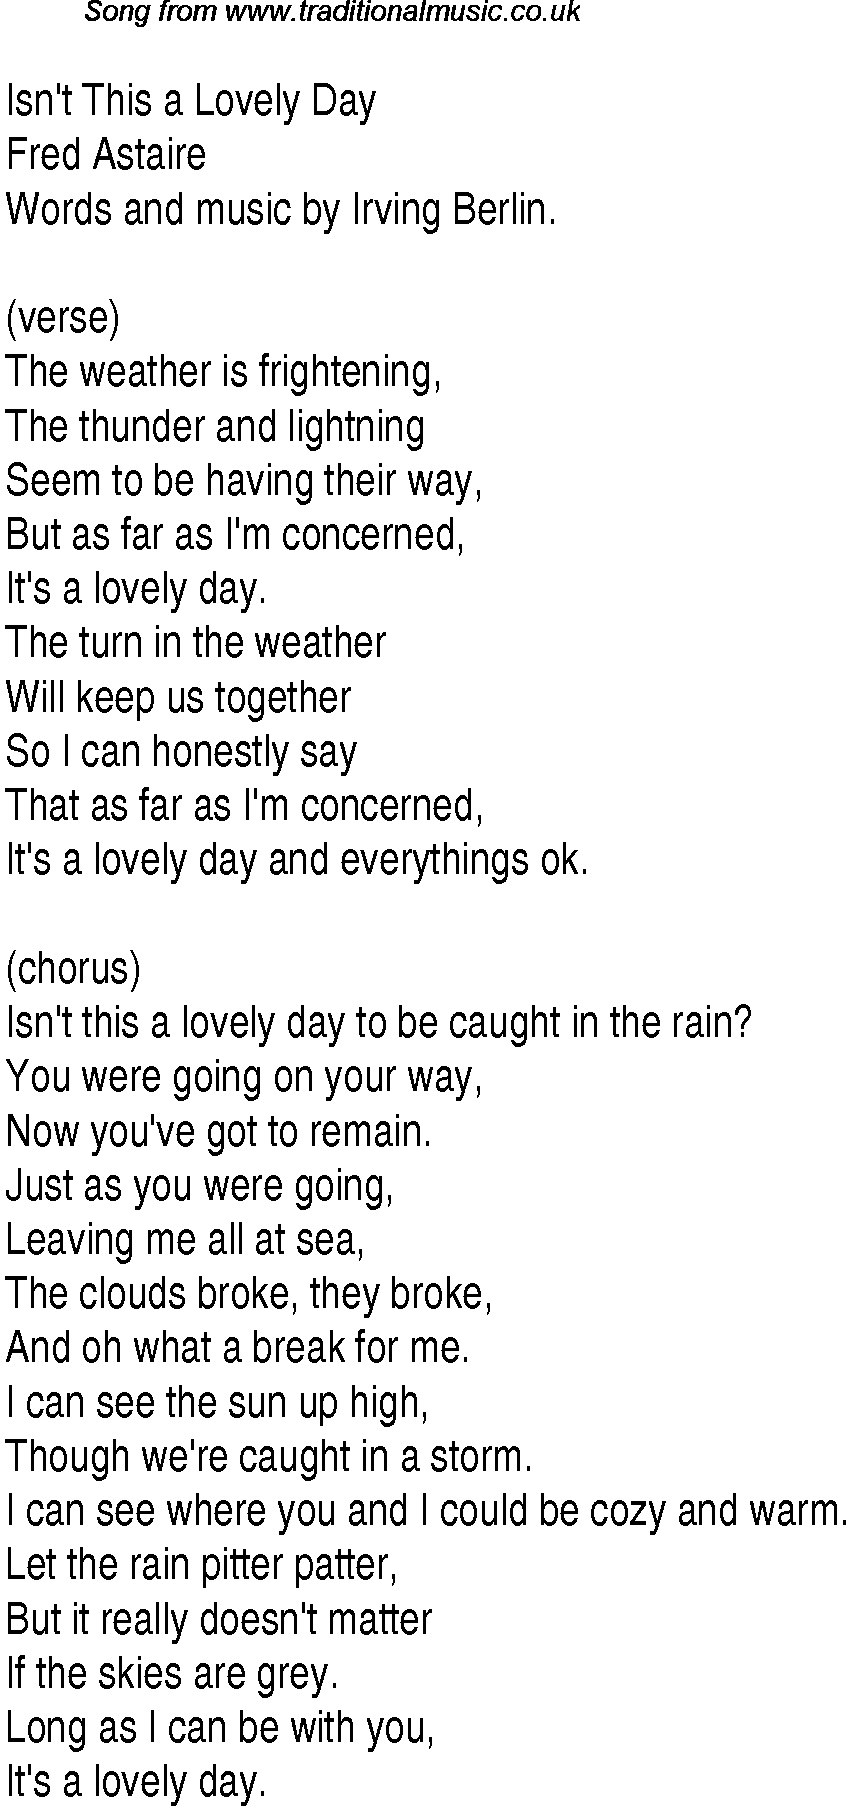 Bill Withers - Lovely Day Lyrics | MetroLyrics